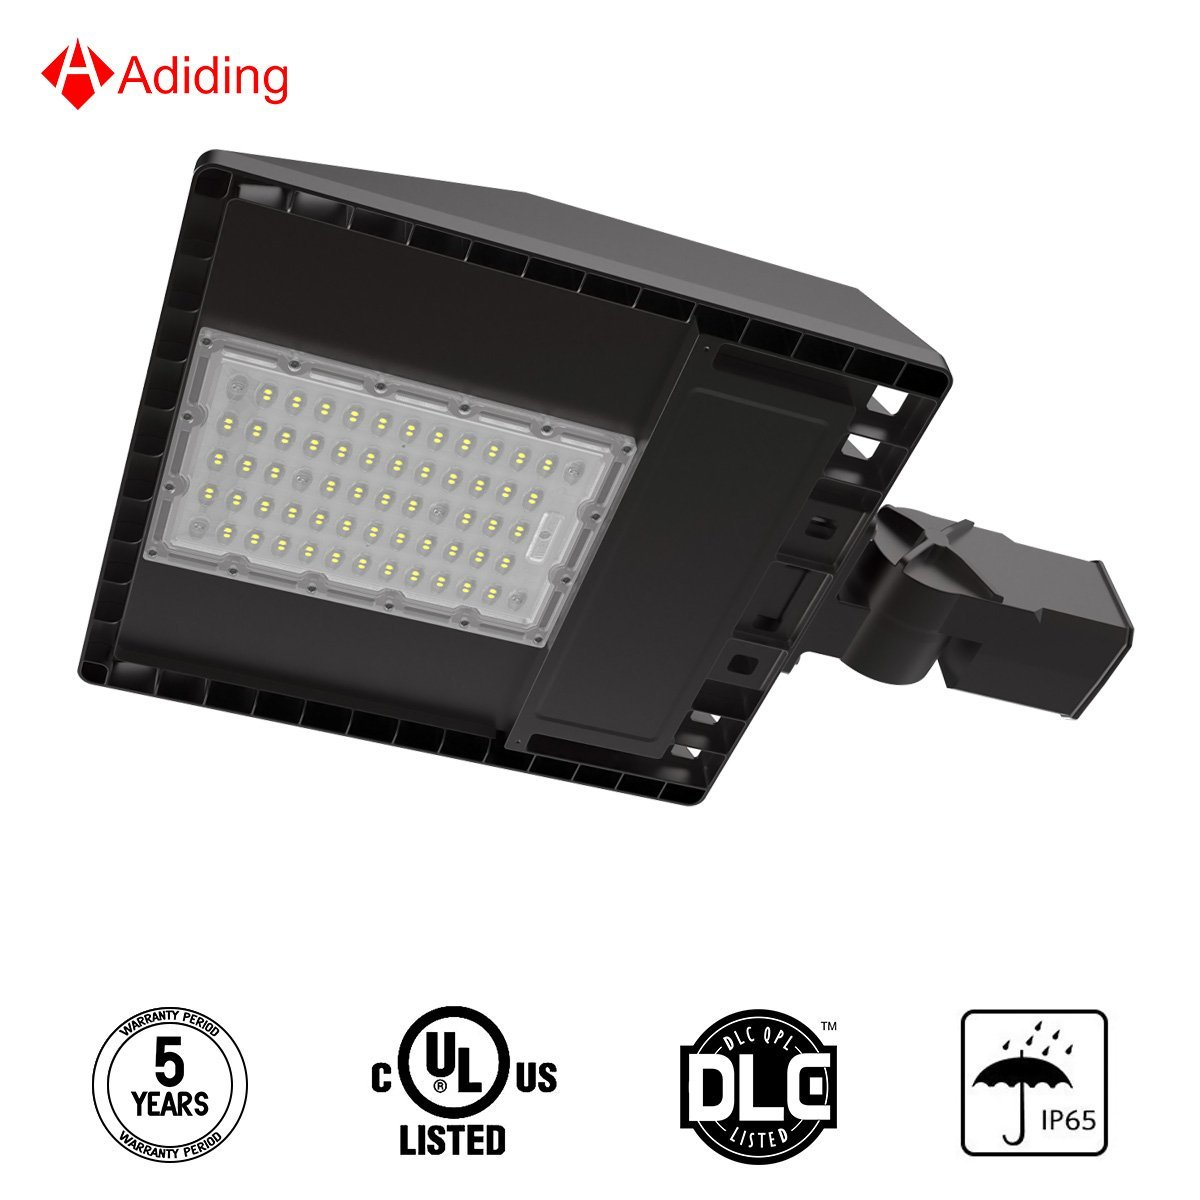 Adiding LED Street Shoebox Light with 3 Types of Mounting 100W Led Parking Lot Light Meanwell Driver 11700 Lumens, 117 Lm/W, 5700K Outdoor Street Lamp with IP65 Rated UL DLC FCC 5 Years Warranty